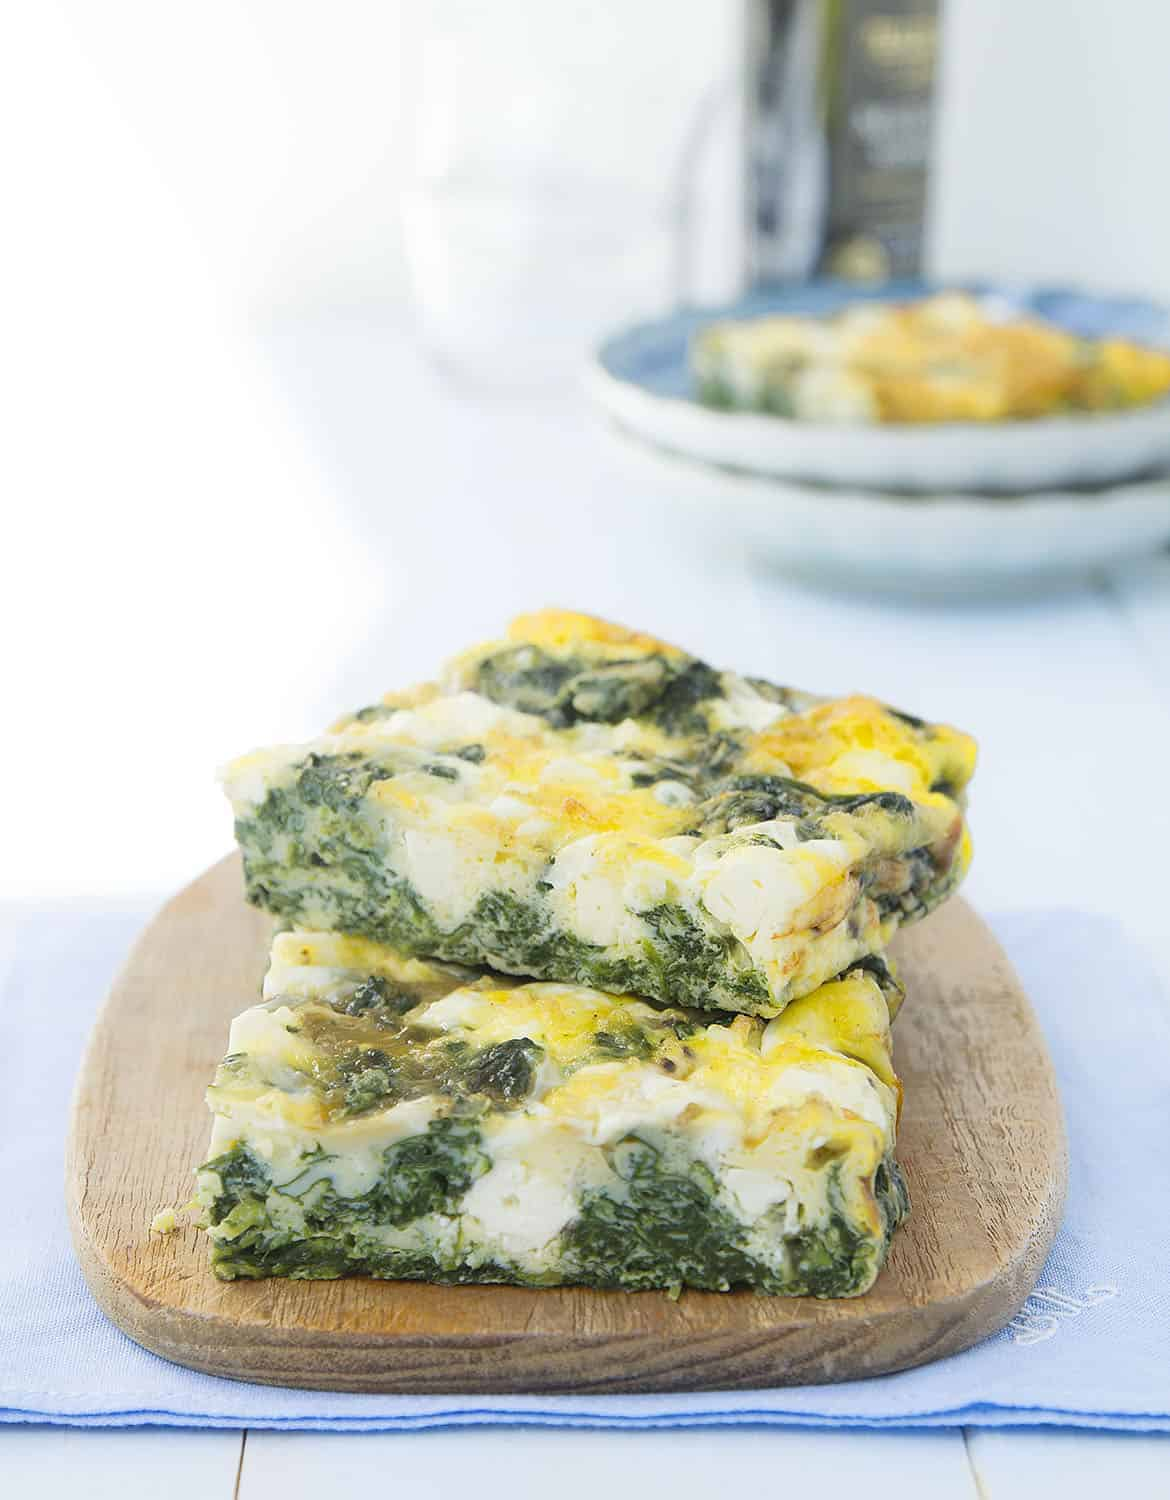 Two large slices of baked frittata with spinach and feta on a small wooden board.